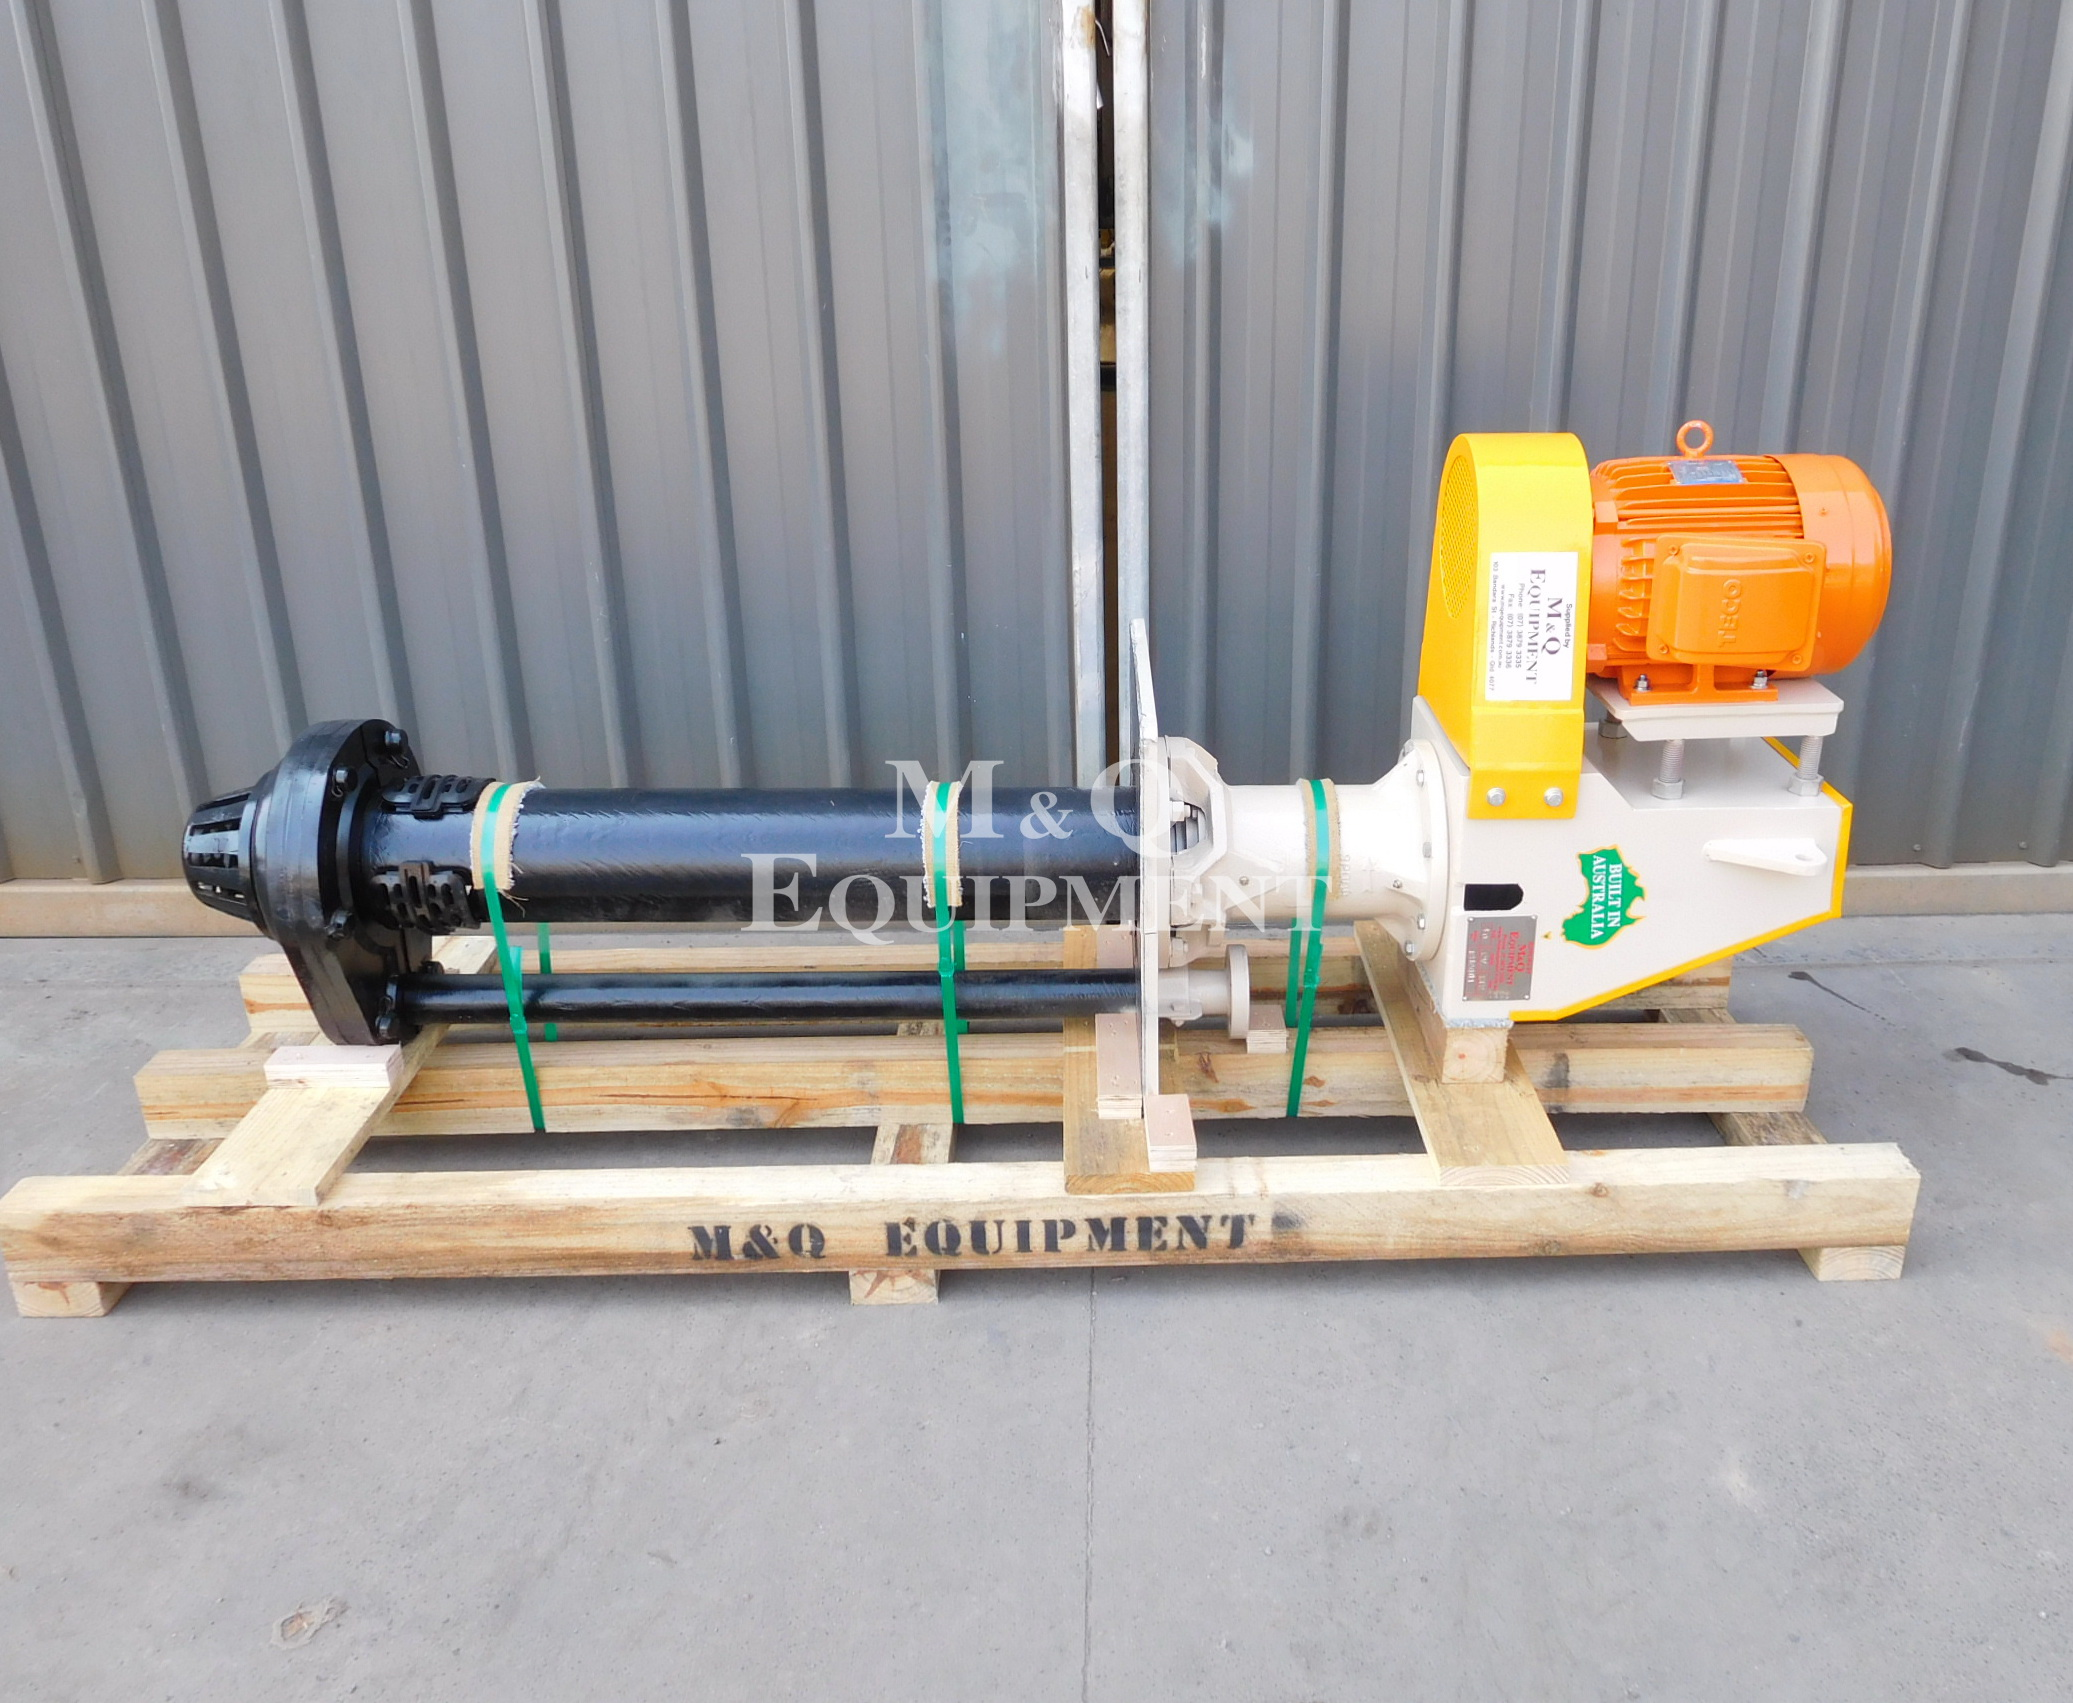 Sold Item 510 - 40 PV SPR - 1200 Austral Sump Pump